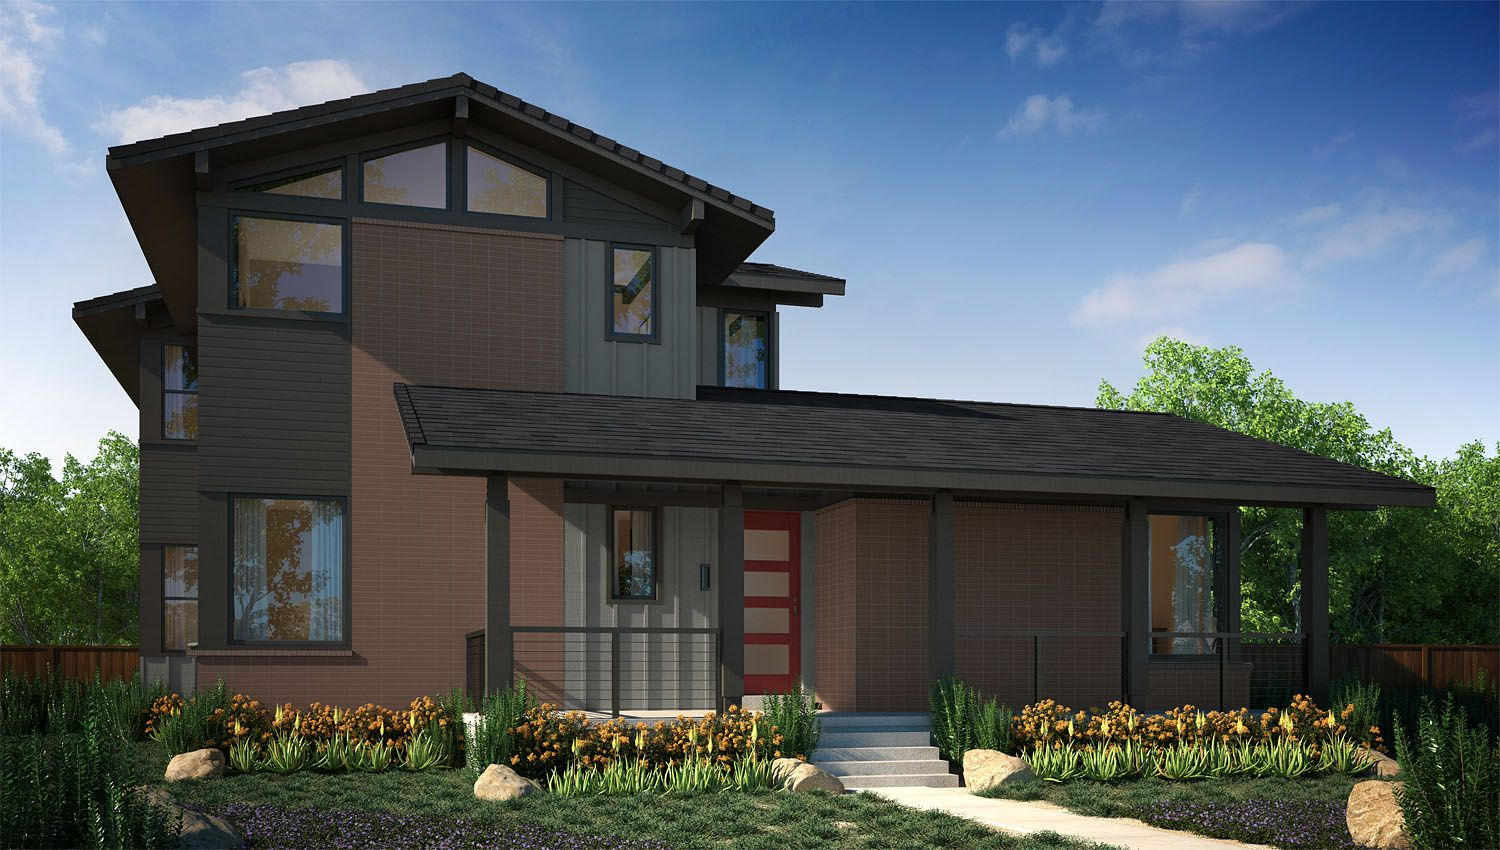 Panacea new homes in denver co by thrive home builders for Thrive homes denver